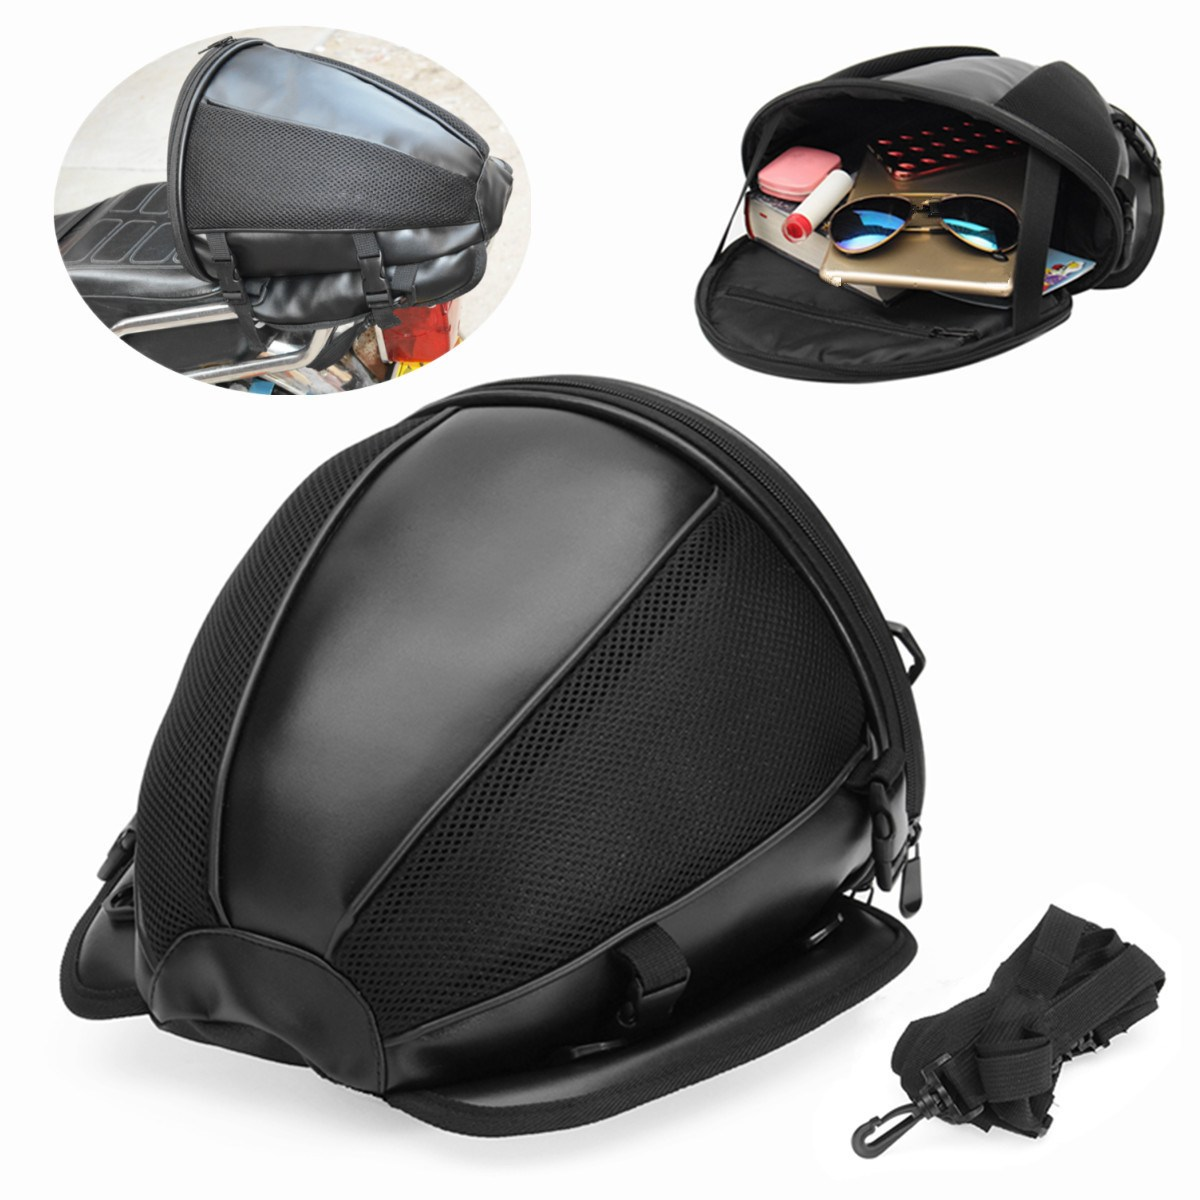 GES Magnetic Motorrad Sattel Beutel Halter Motorbike Fuel Bag Motorcycle Tank Bag Waterproof Oxford Saddle Black Motorbike Pack